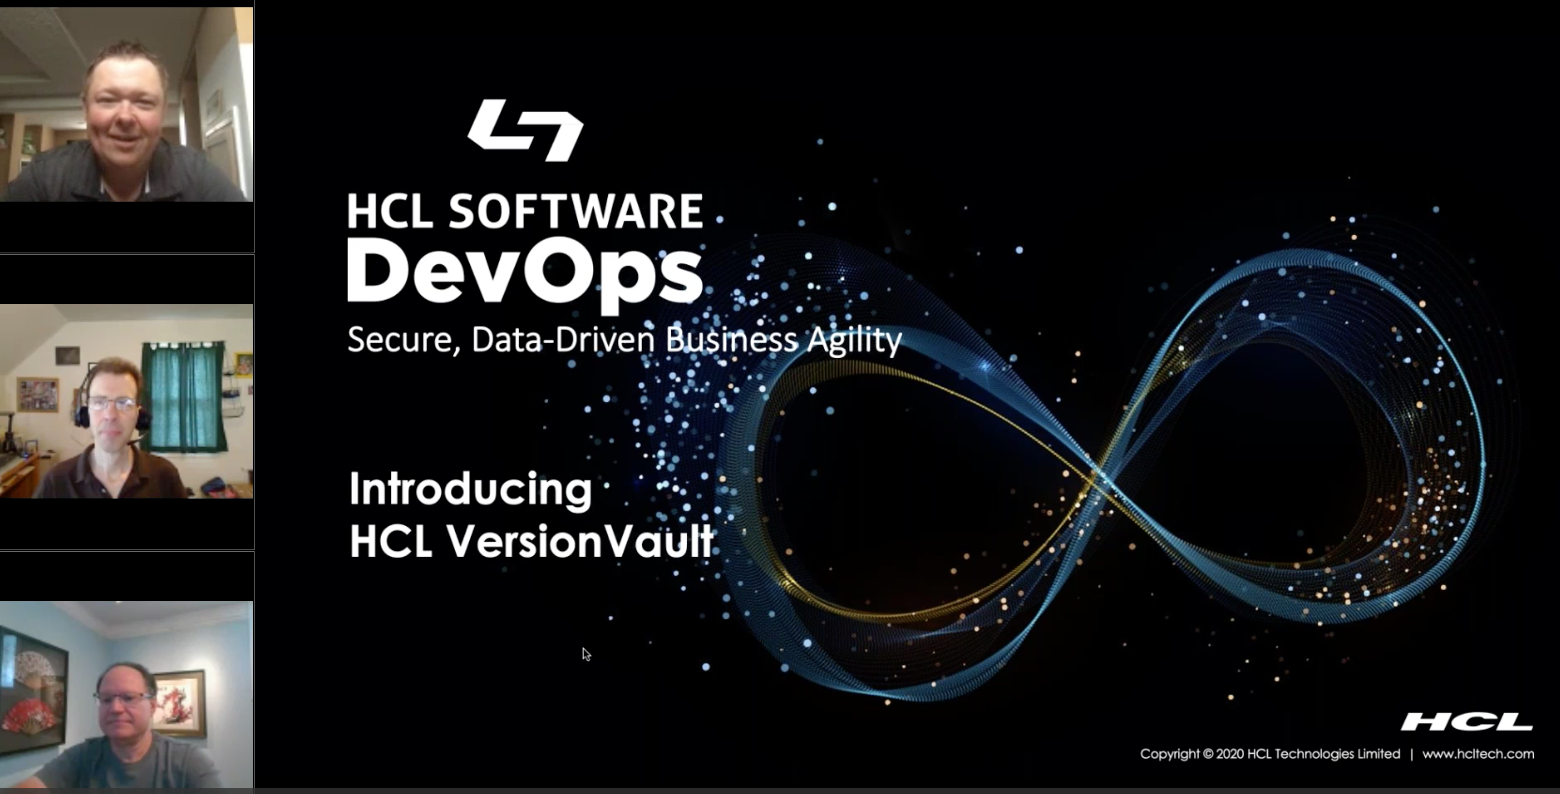 HCL VersionVault delivers version control and more